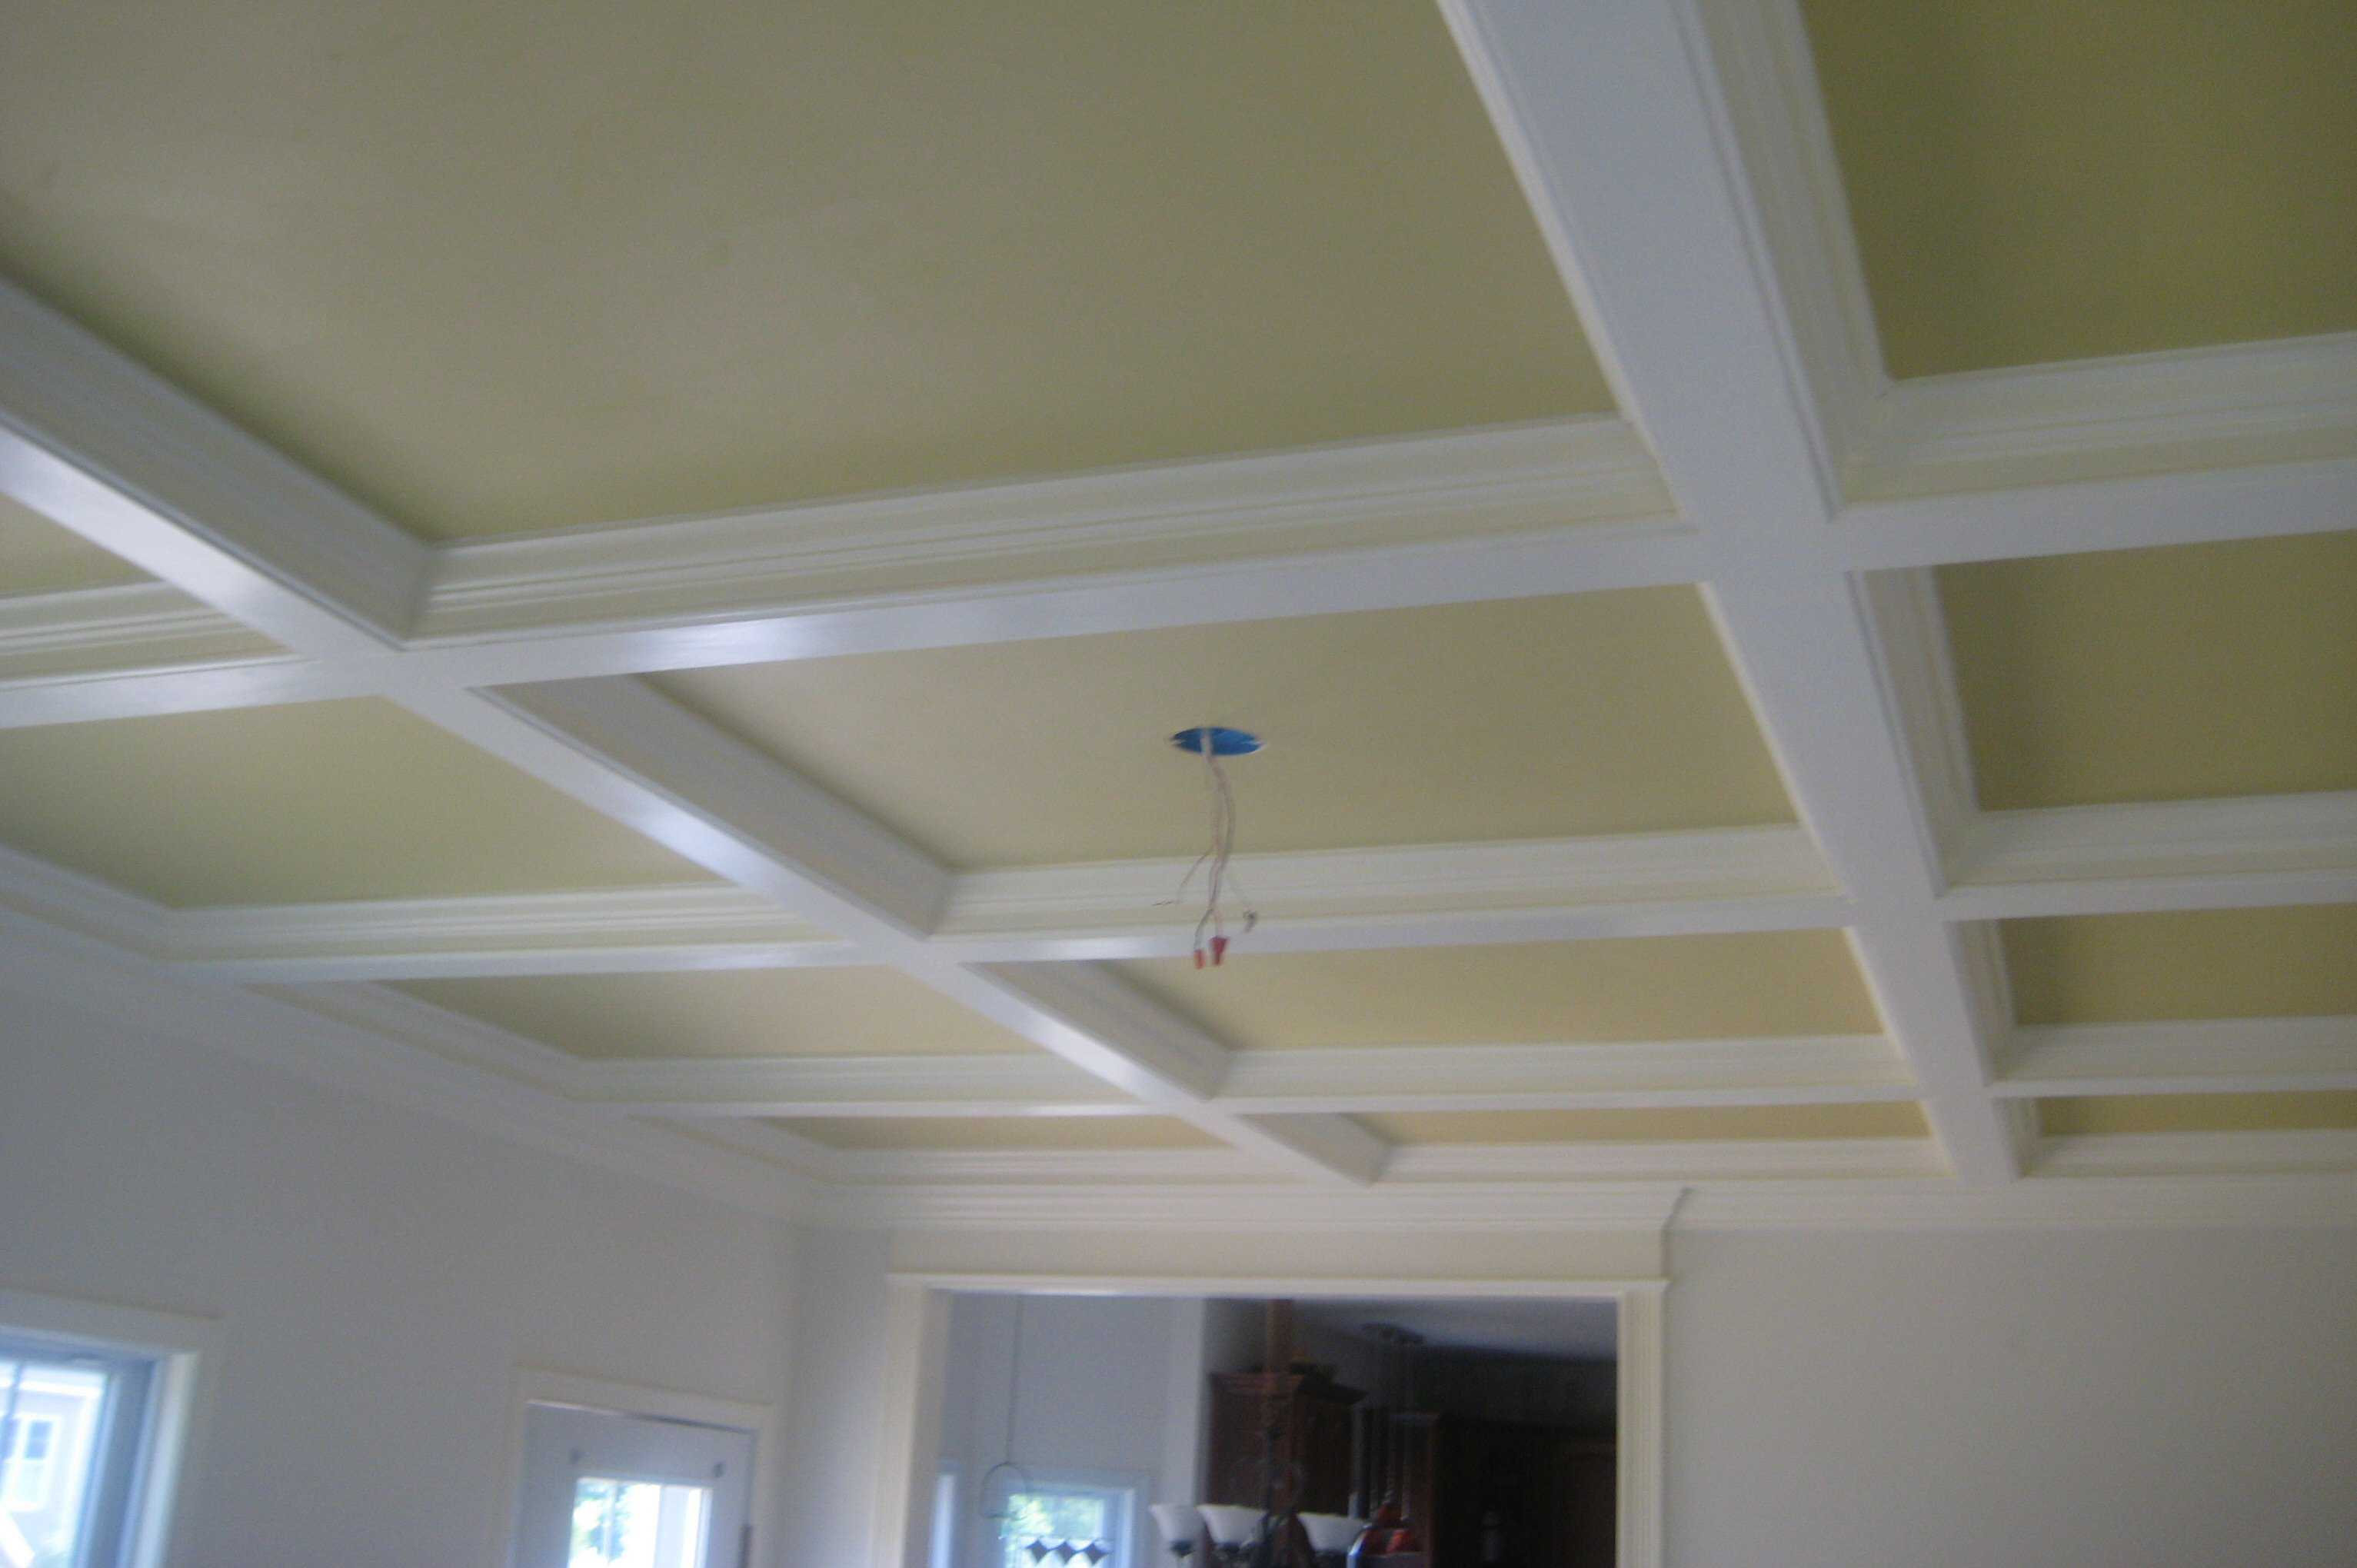 Coffered ceiling squared indentations made from white colored wood protrusions ceiling ready for